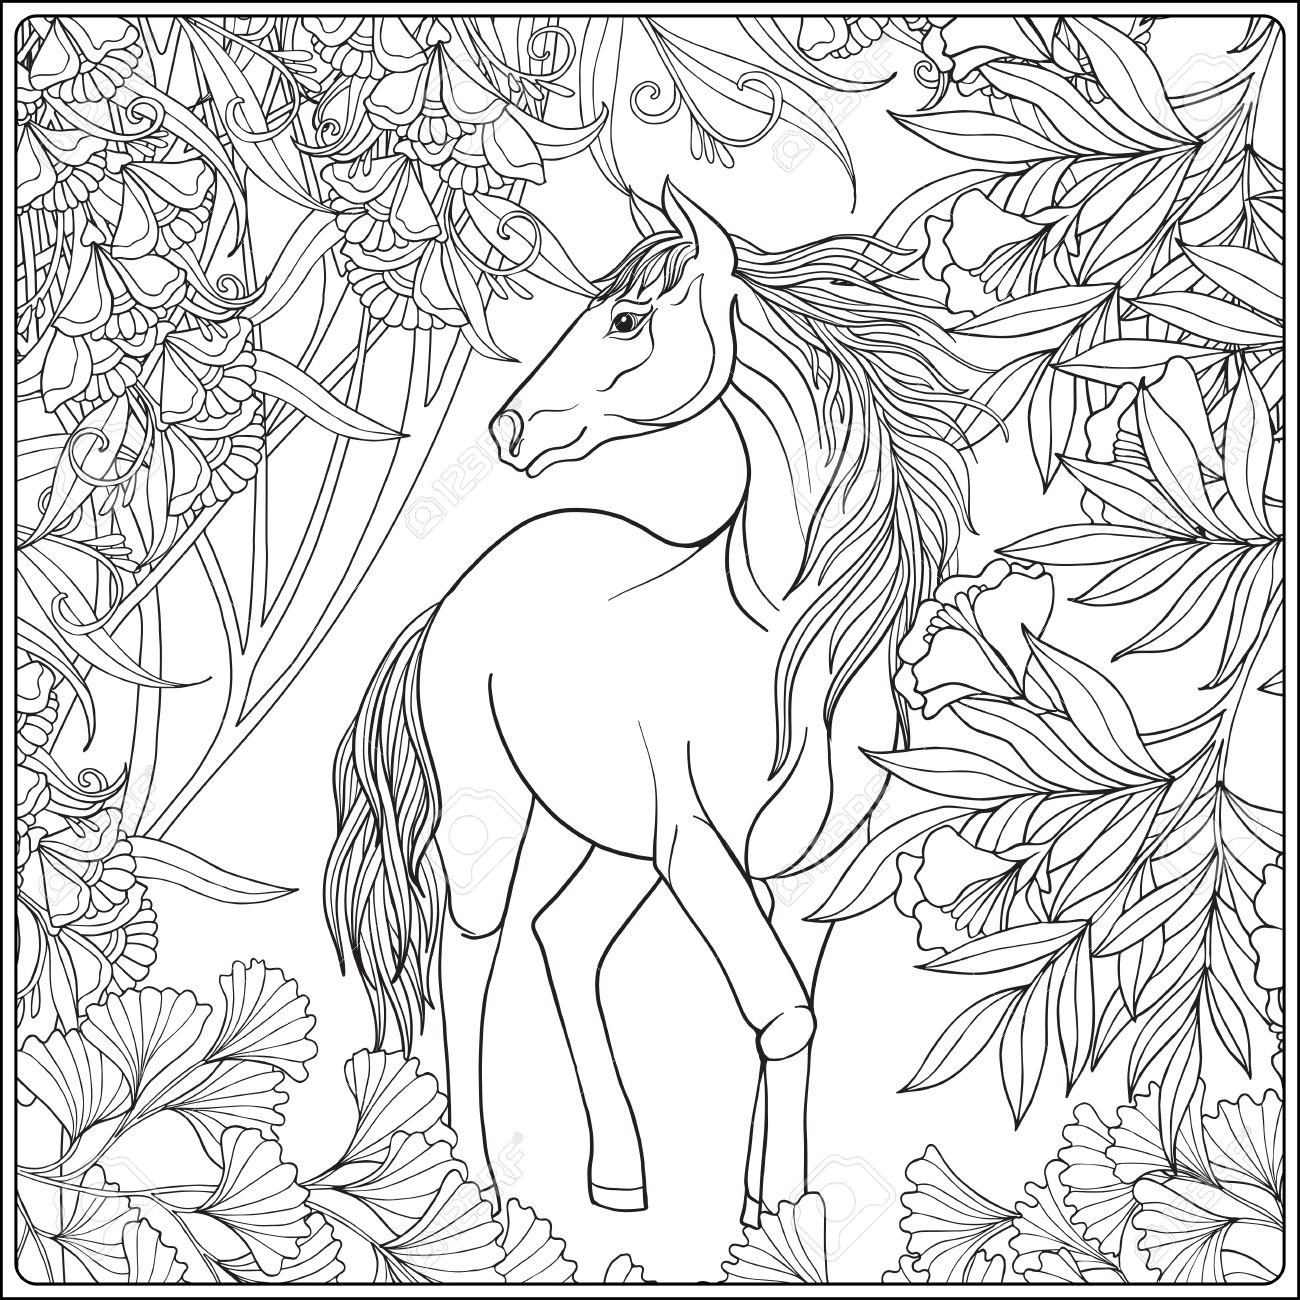 1300x1300 Horse In Garden. Illustration. Coloring Book For Adult And Older